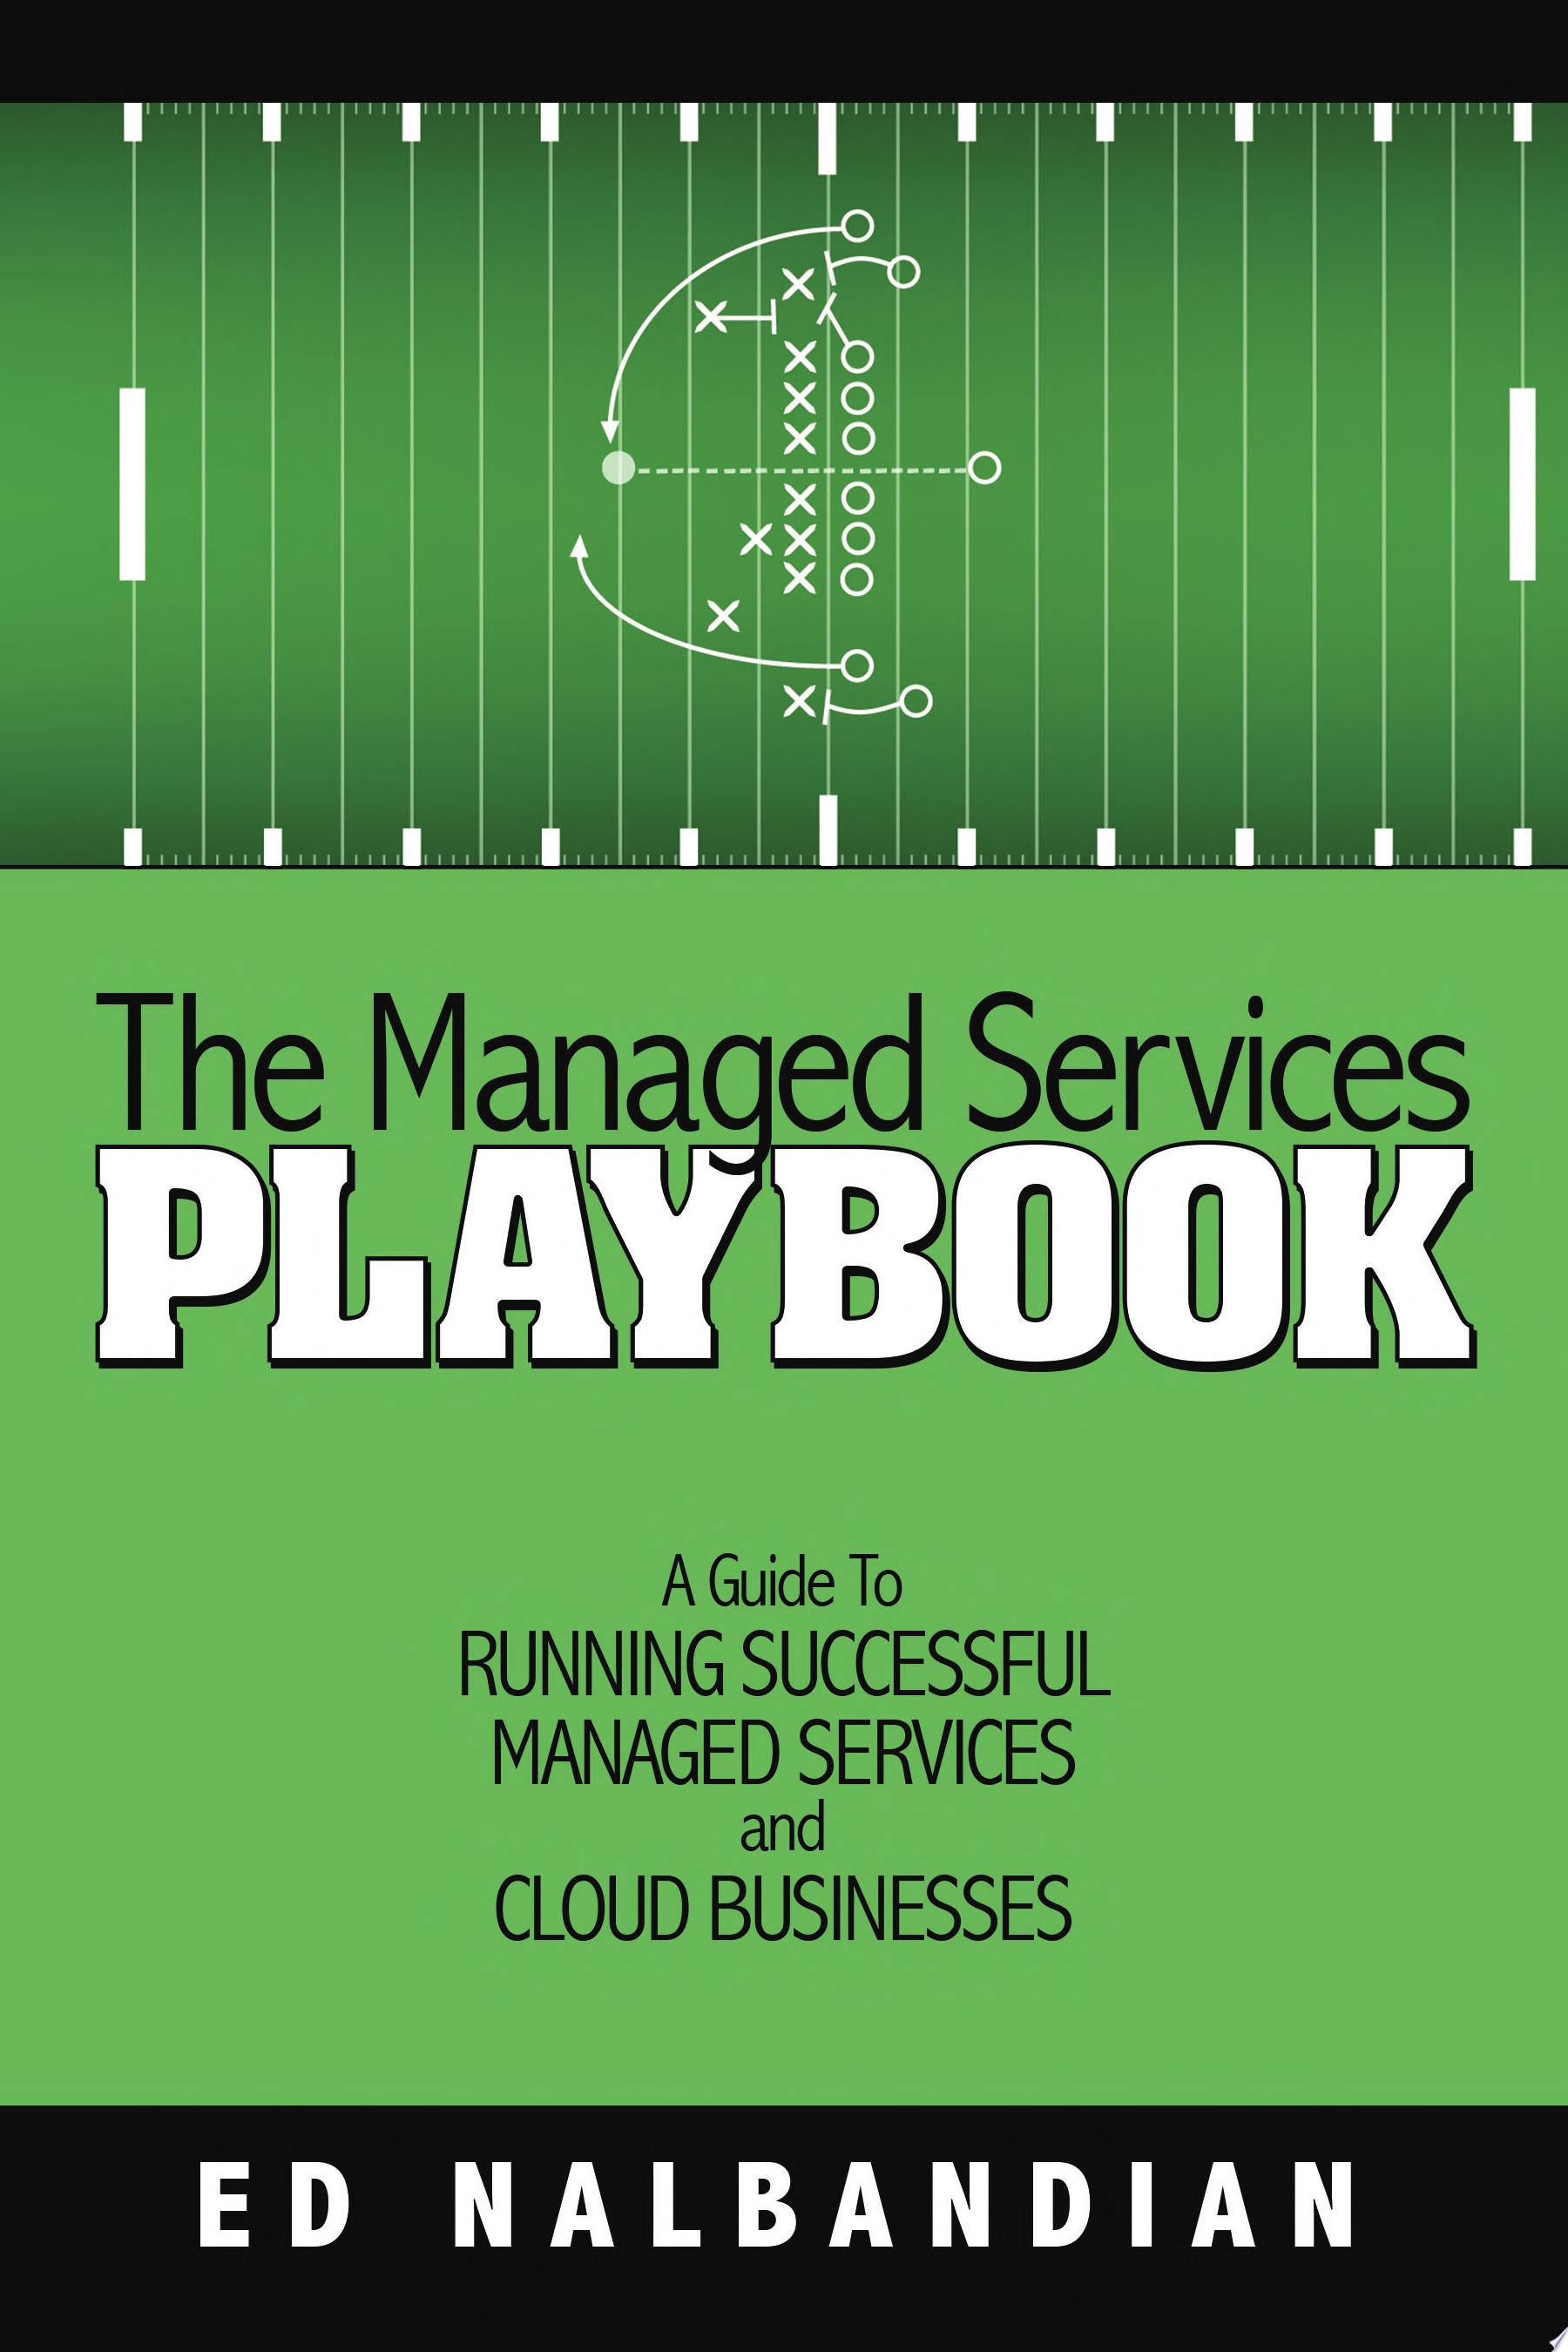 The Managed Services Playbook